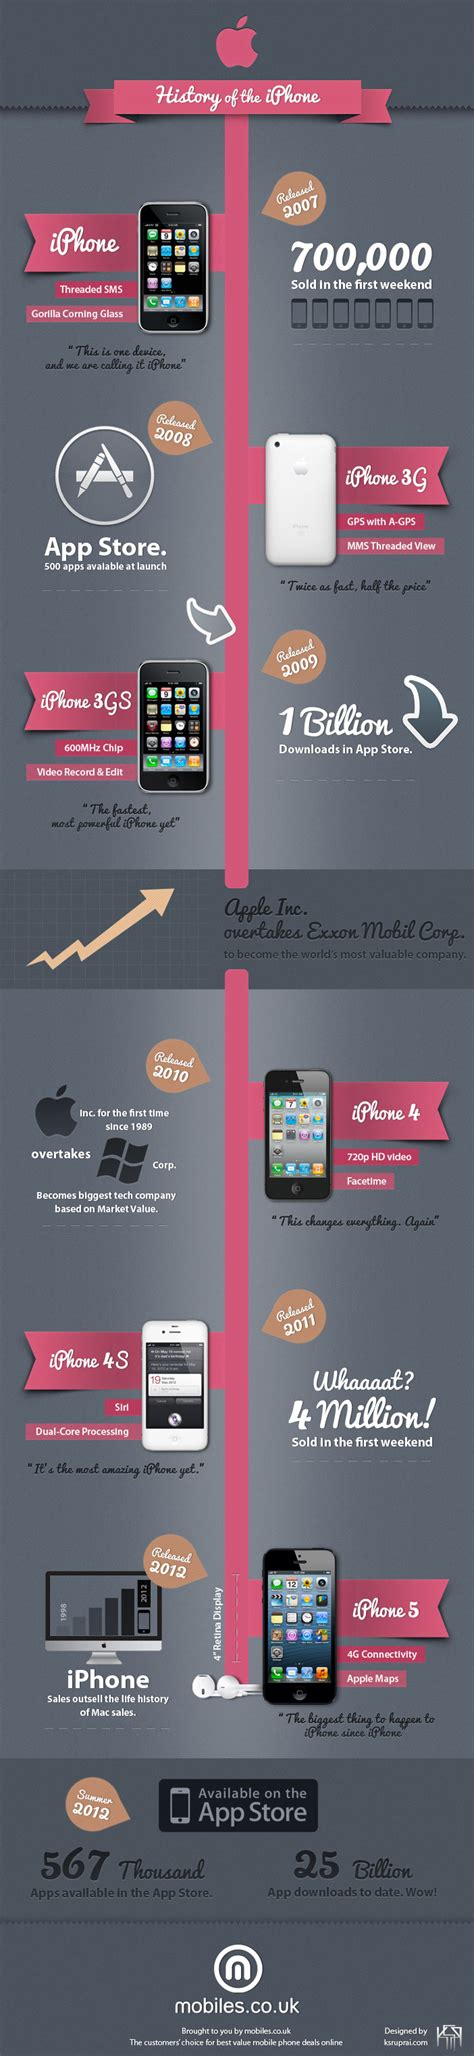 history of iphone the history of the apple iphone by mobiles co uk iphone 5